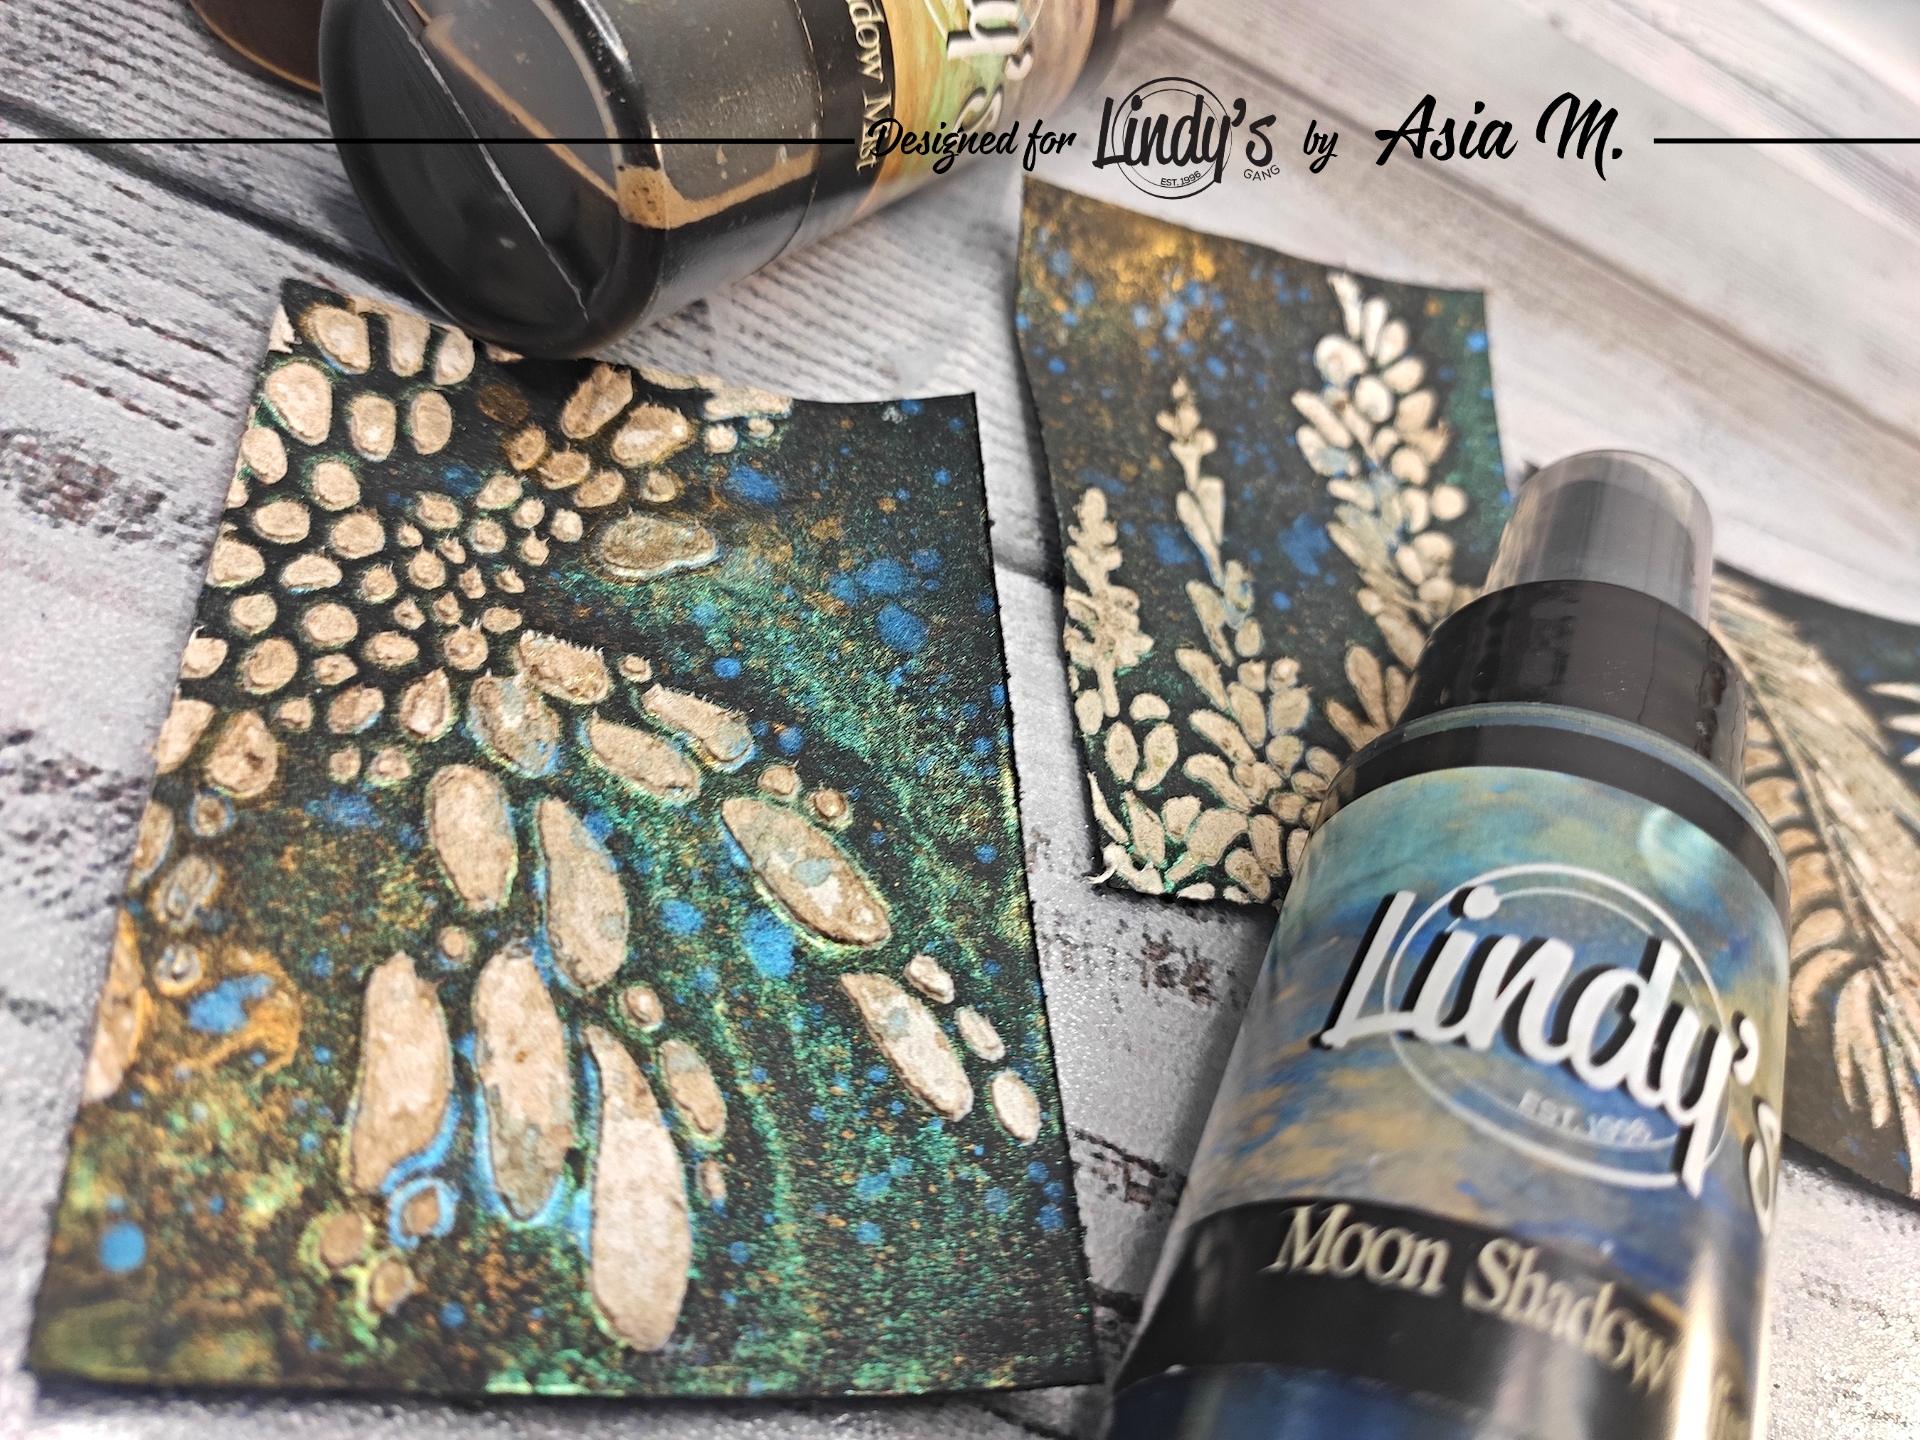 Are you afraid to work on black paper? Don't be, use Lindy's! Lean how with Asia